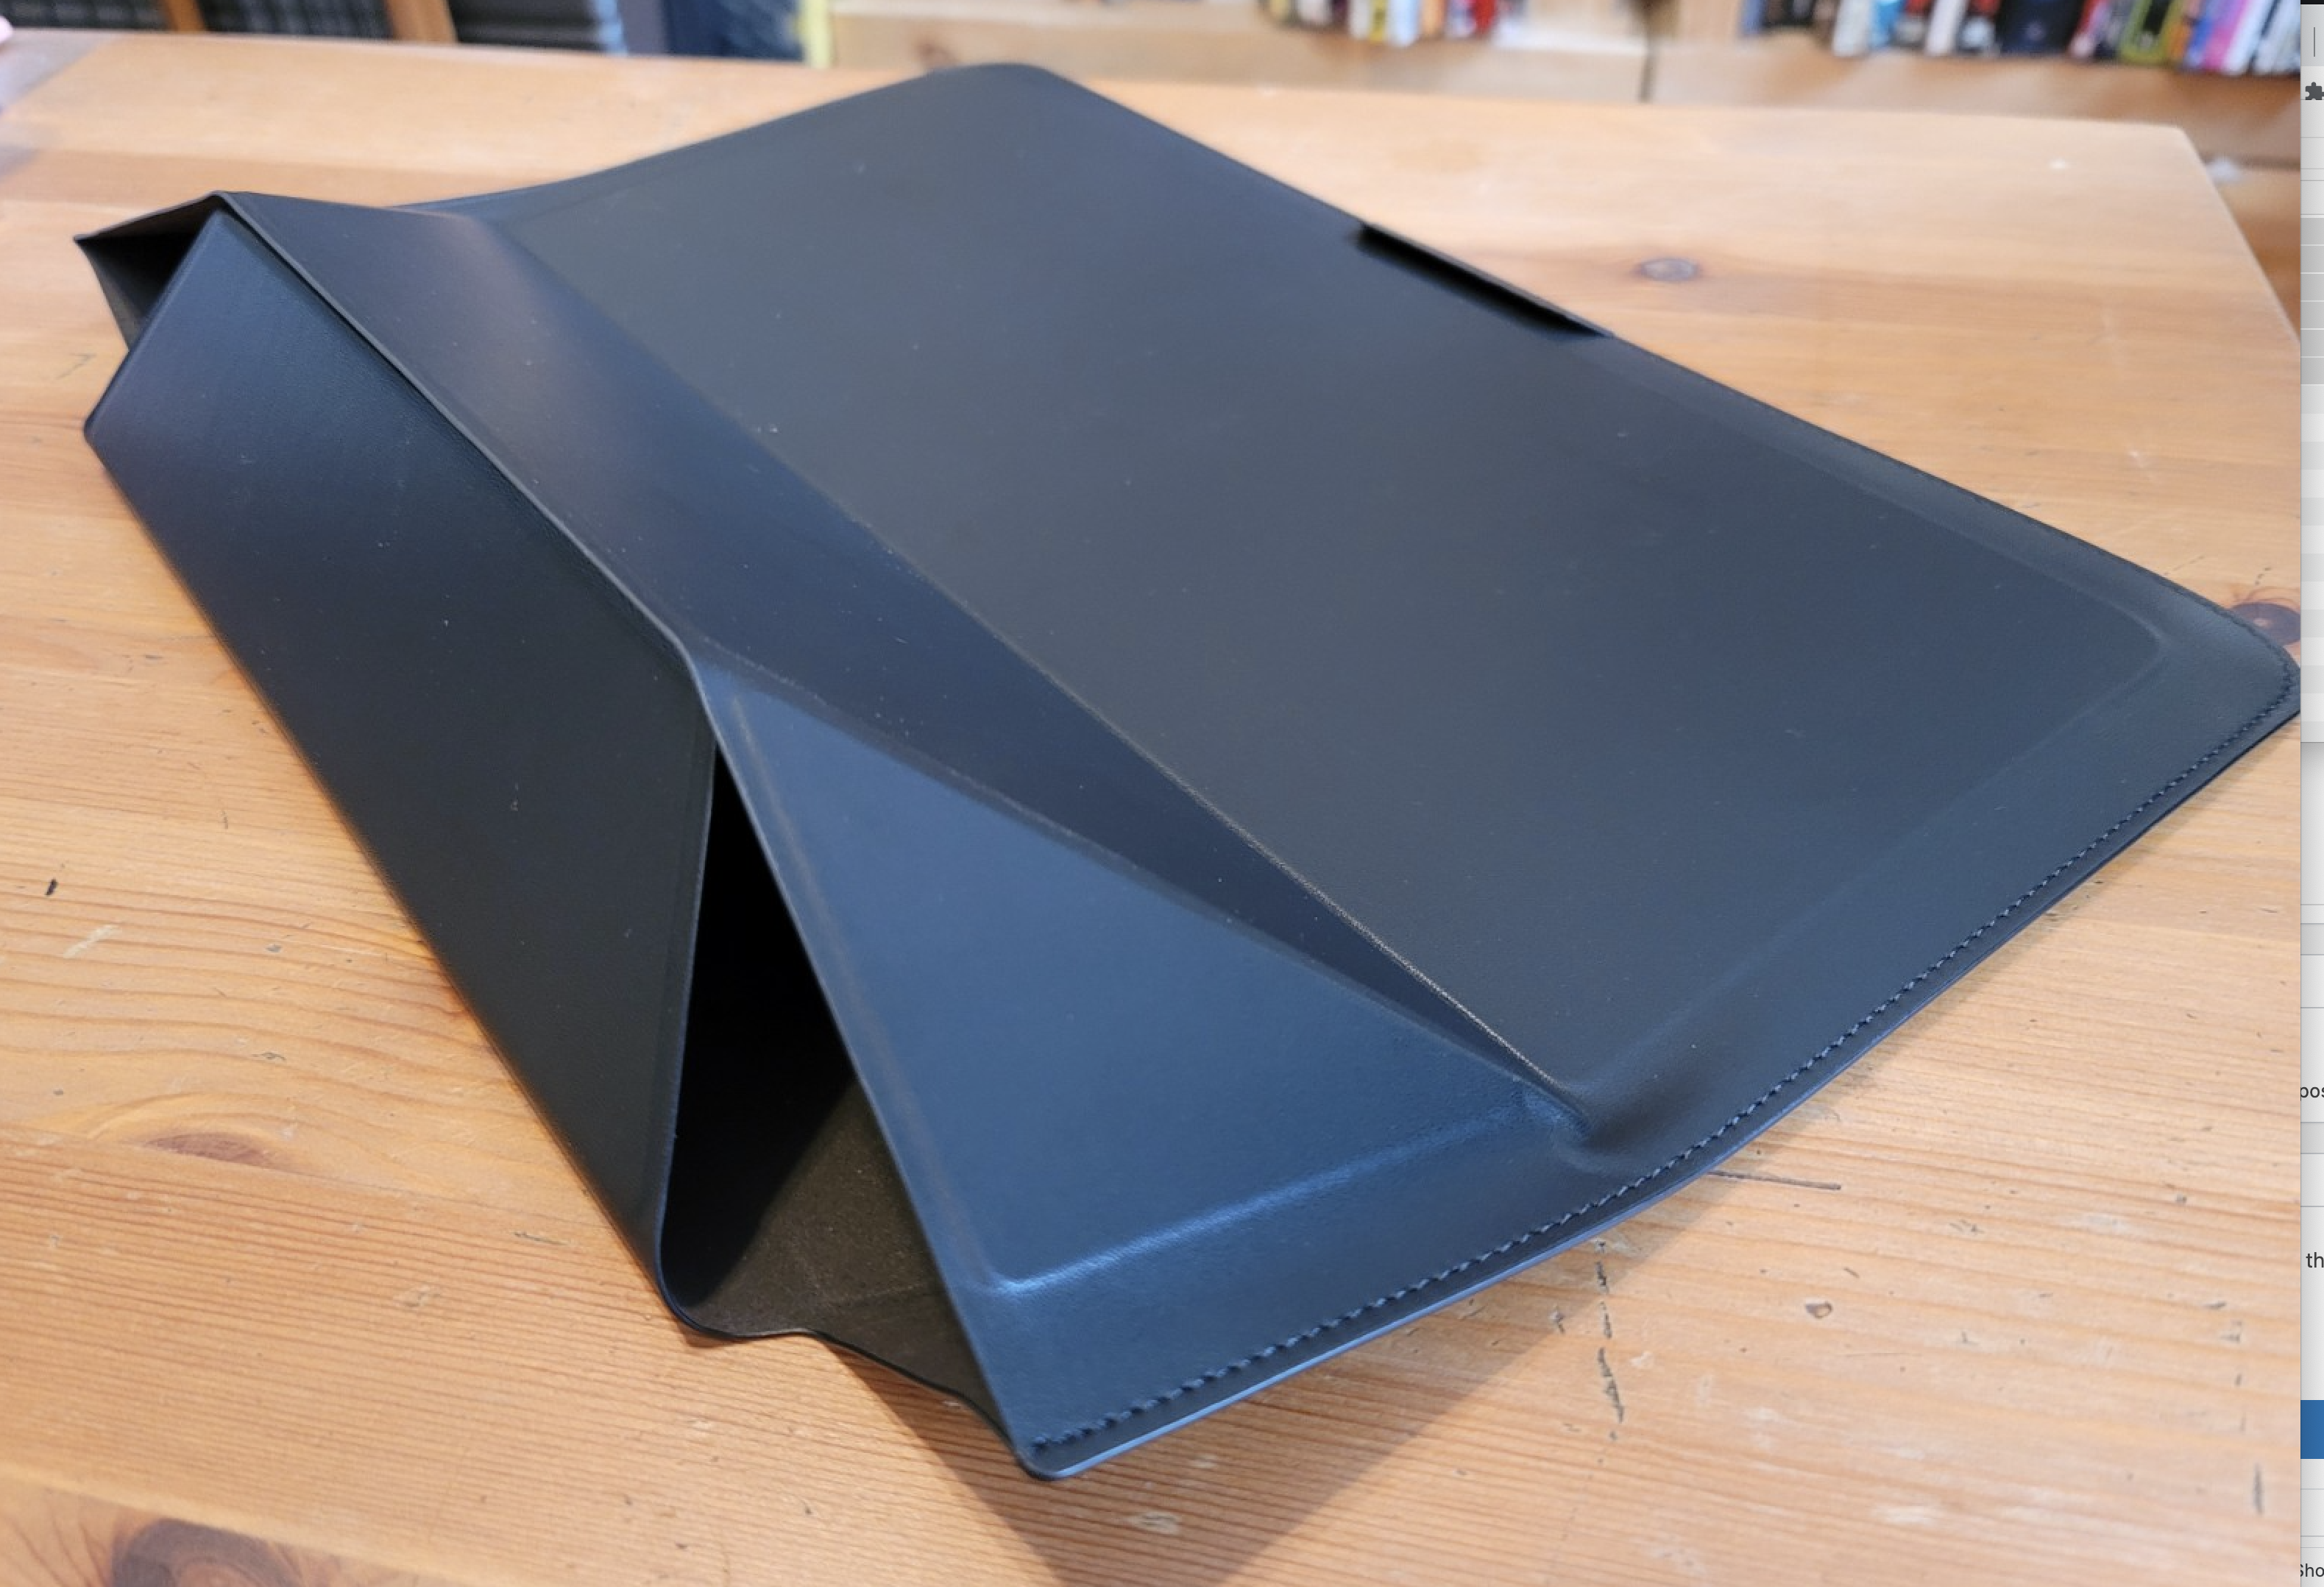 Moft is back with a clever laptop sleeve that converts into a stand – TechCrunch